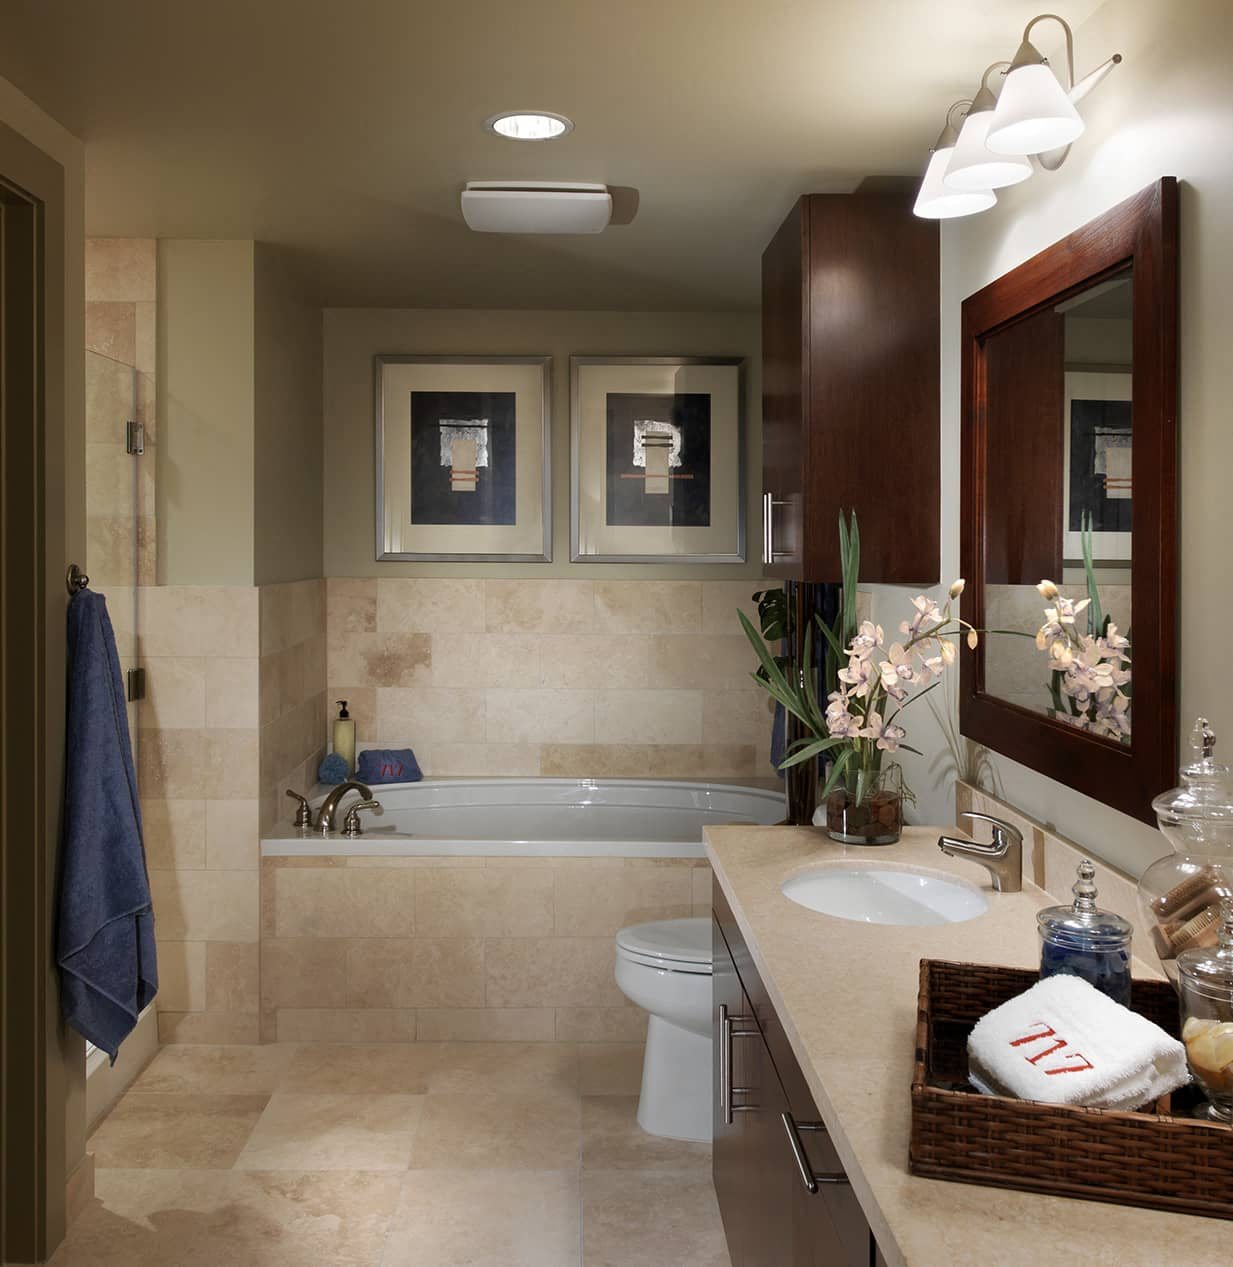 Apartment home bathroom